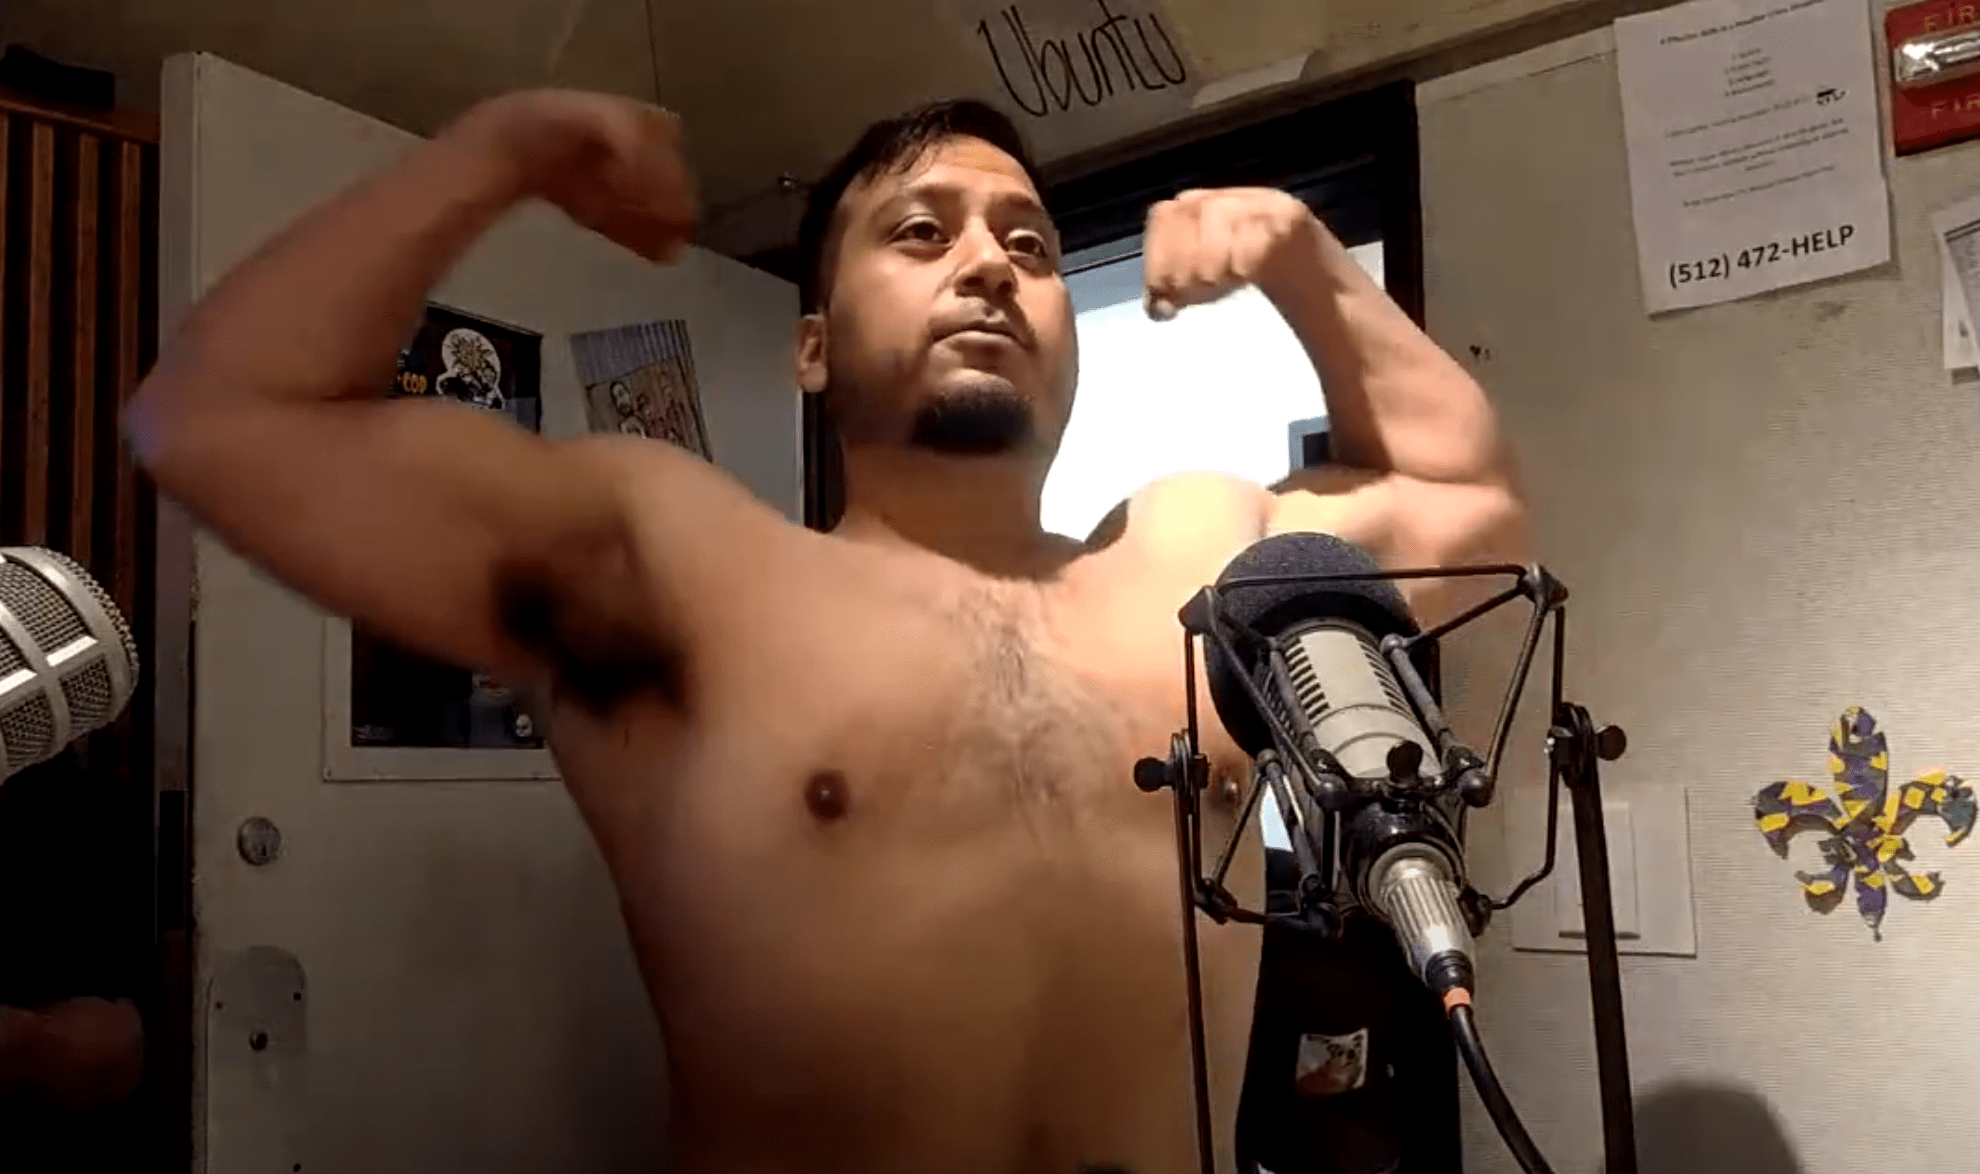 chuy flexing muscles